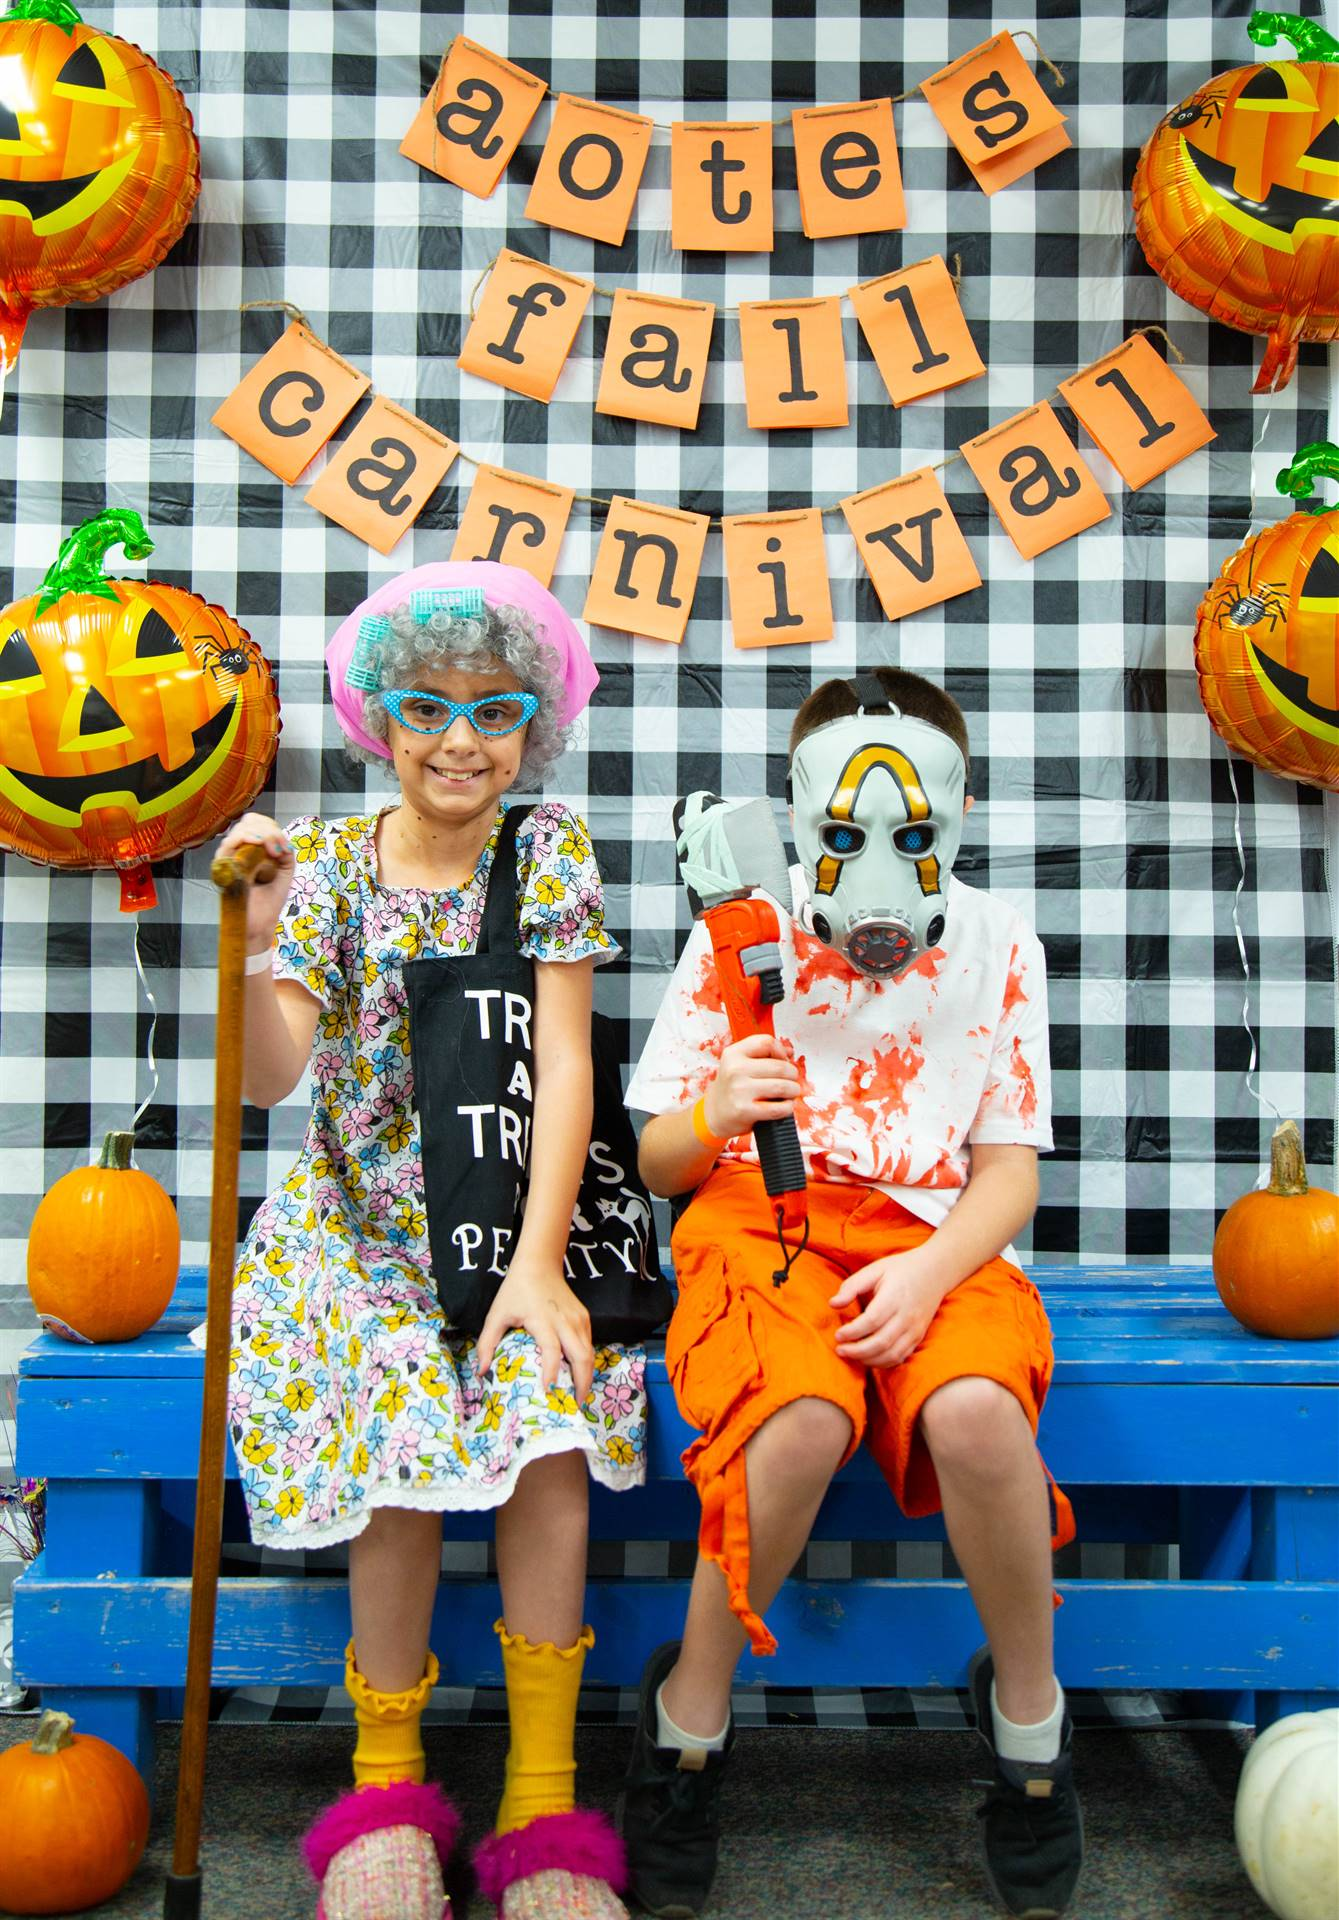 kids dressed in costume sit at photo booth